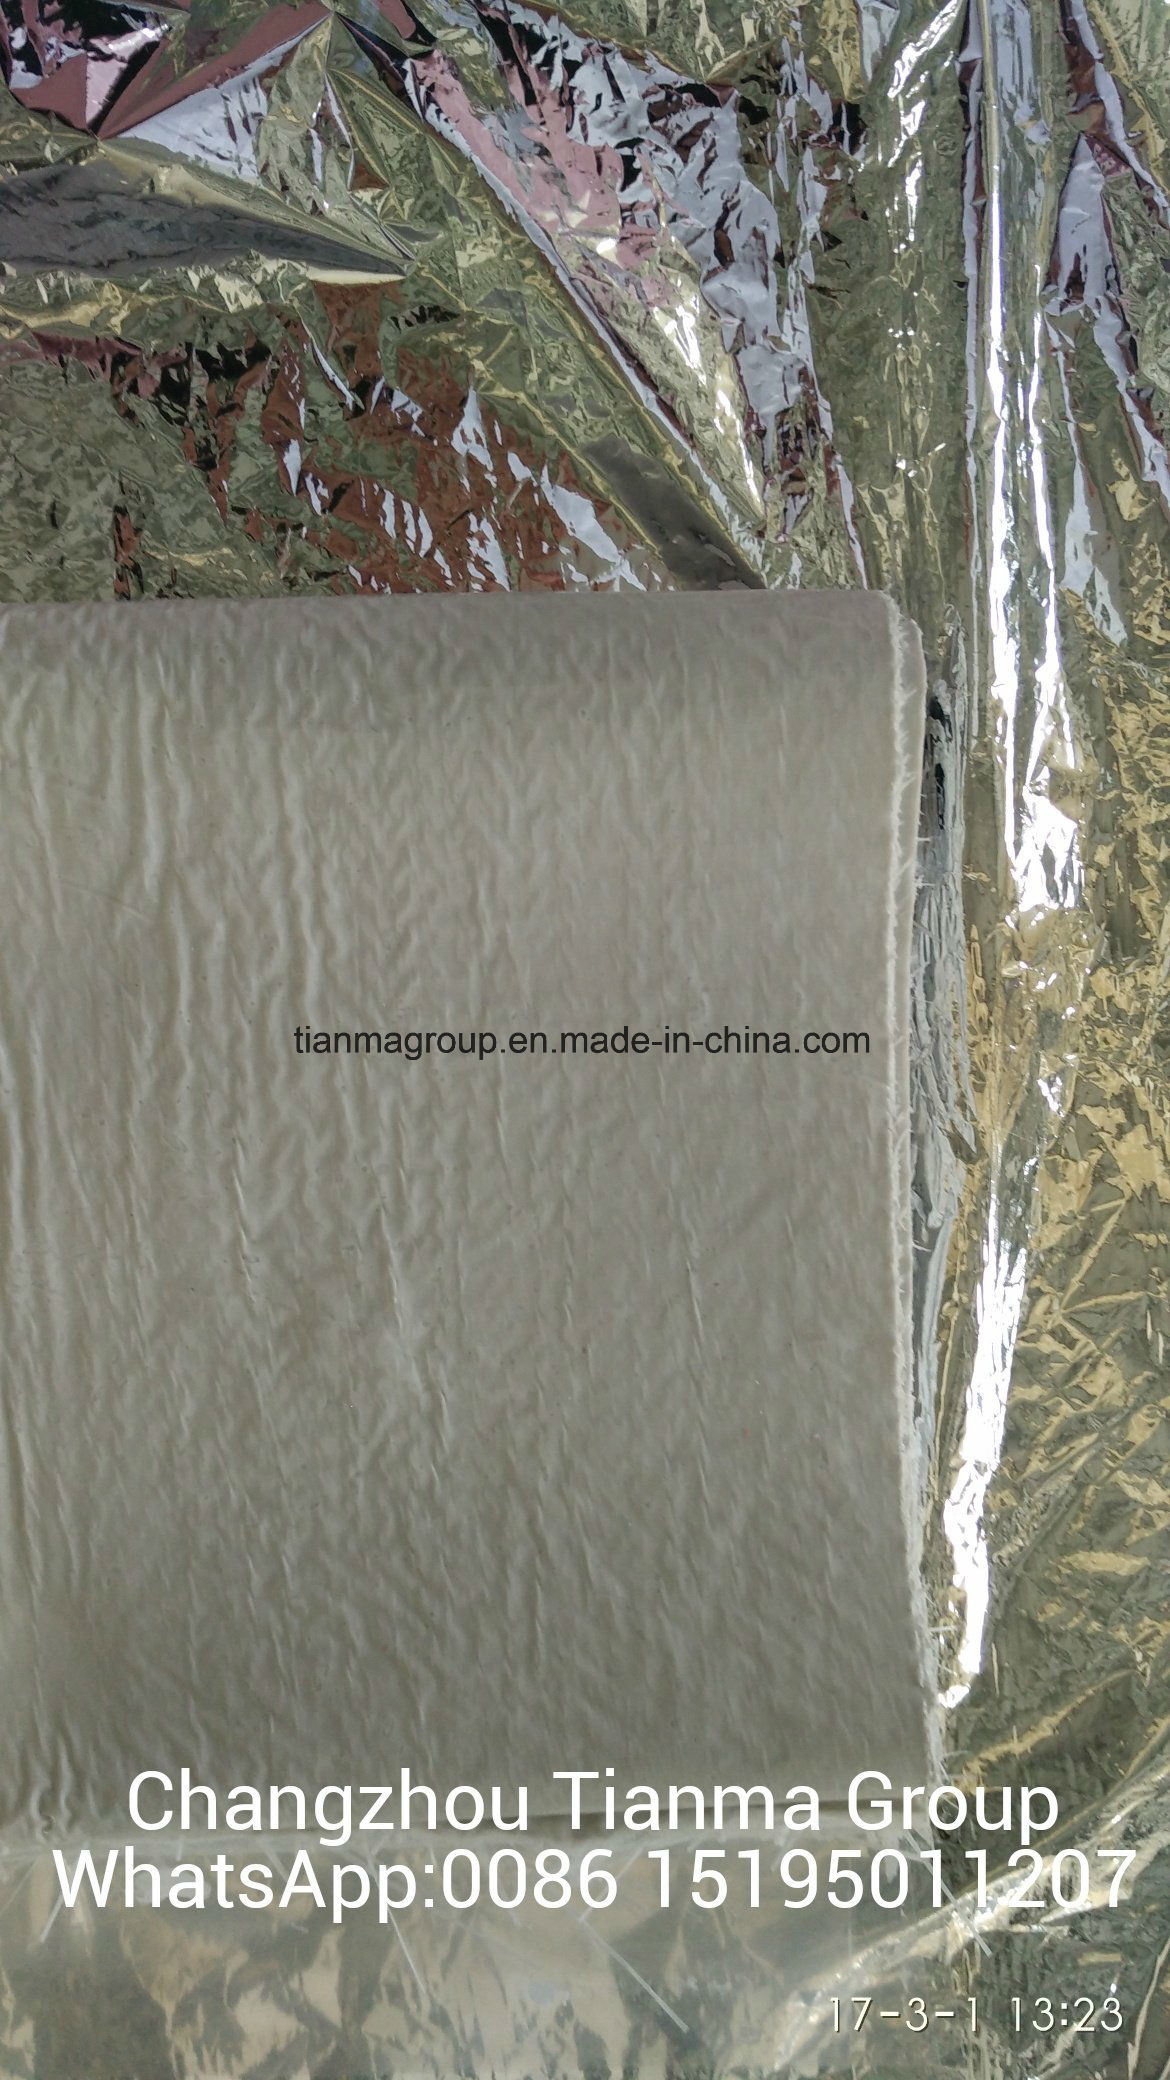 Fiberglass Sheet Moulding Compound, SMC for Electric Meter Box